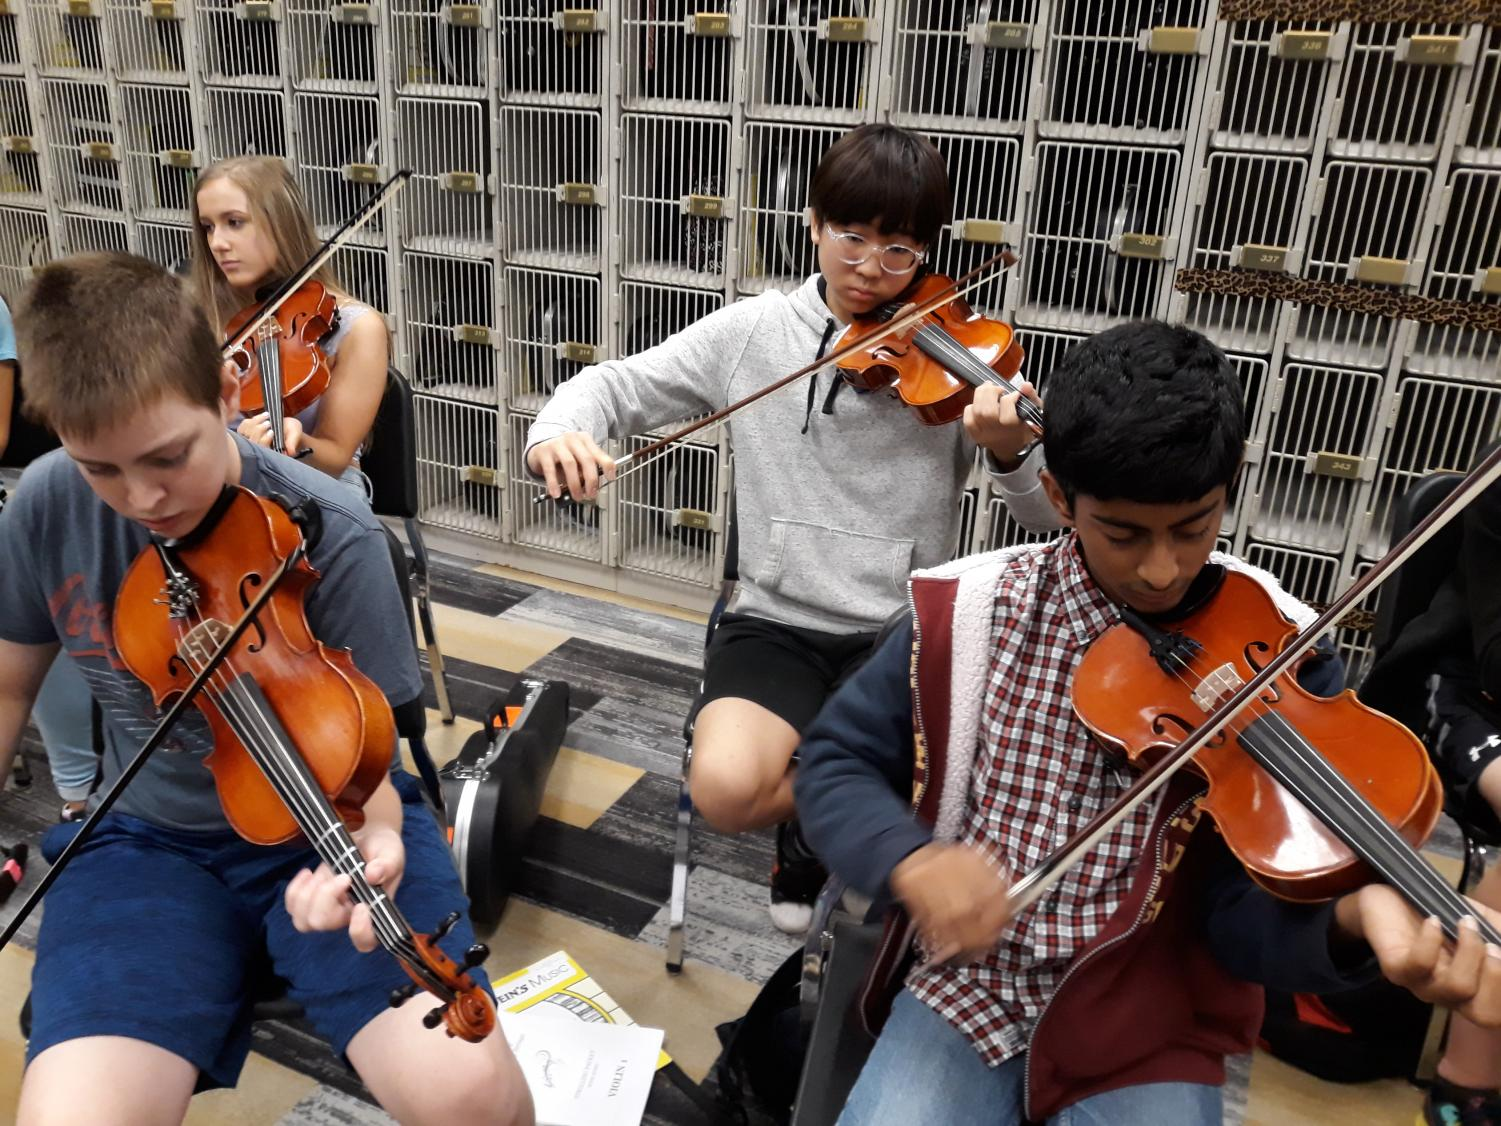 Violin and viola students play their instruments in 4th period orchestra class.